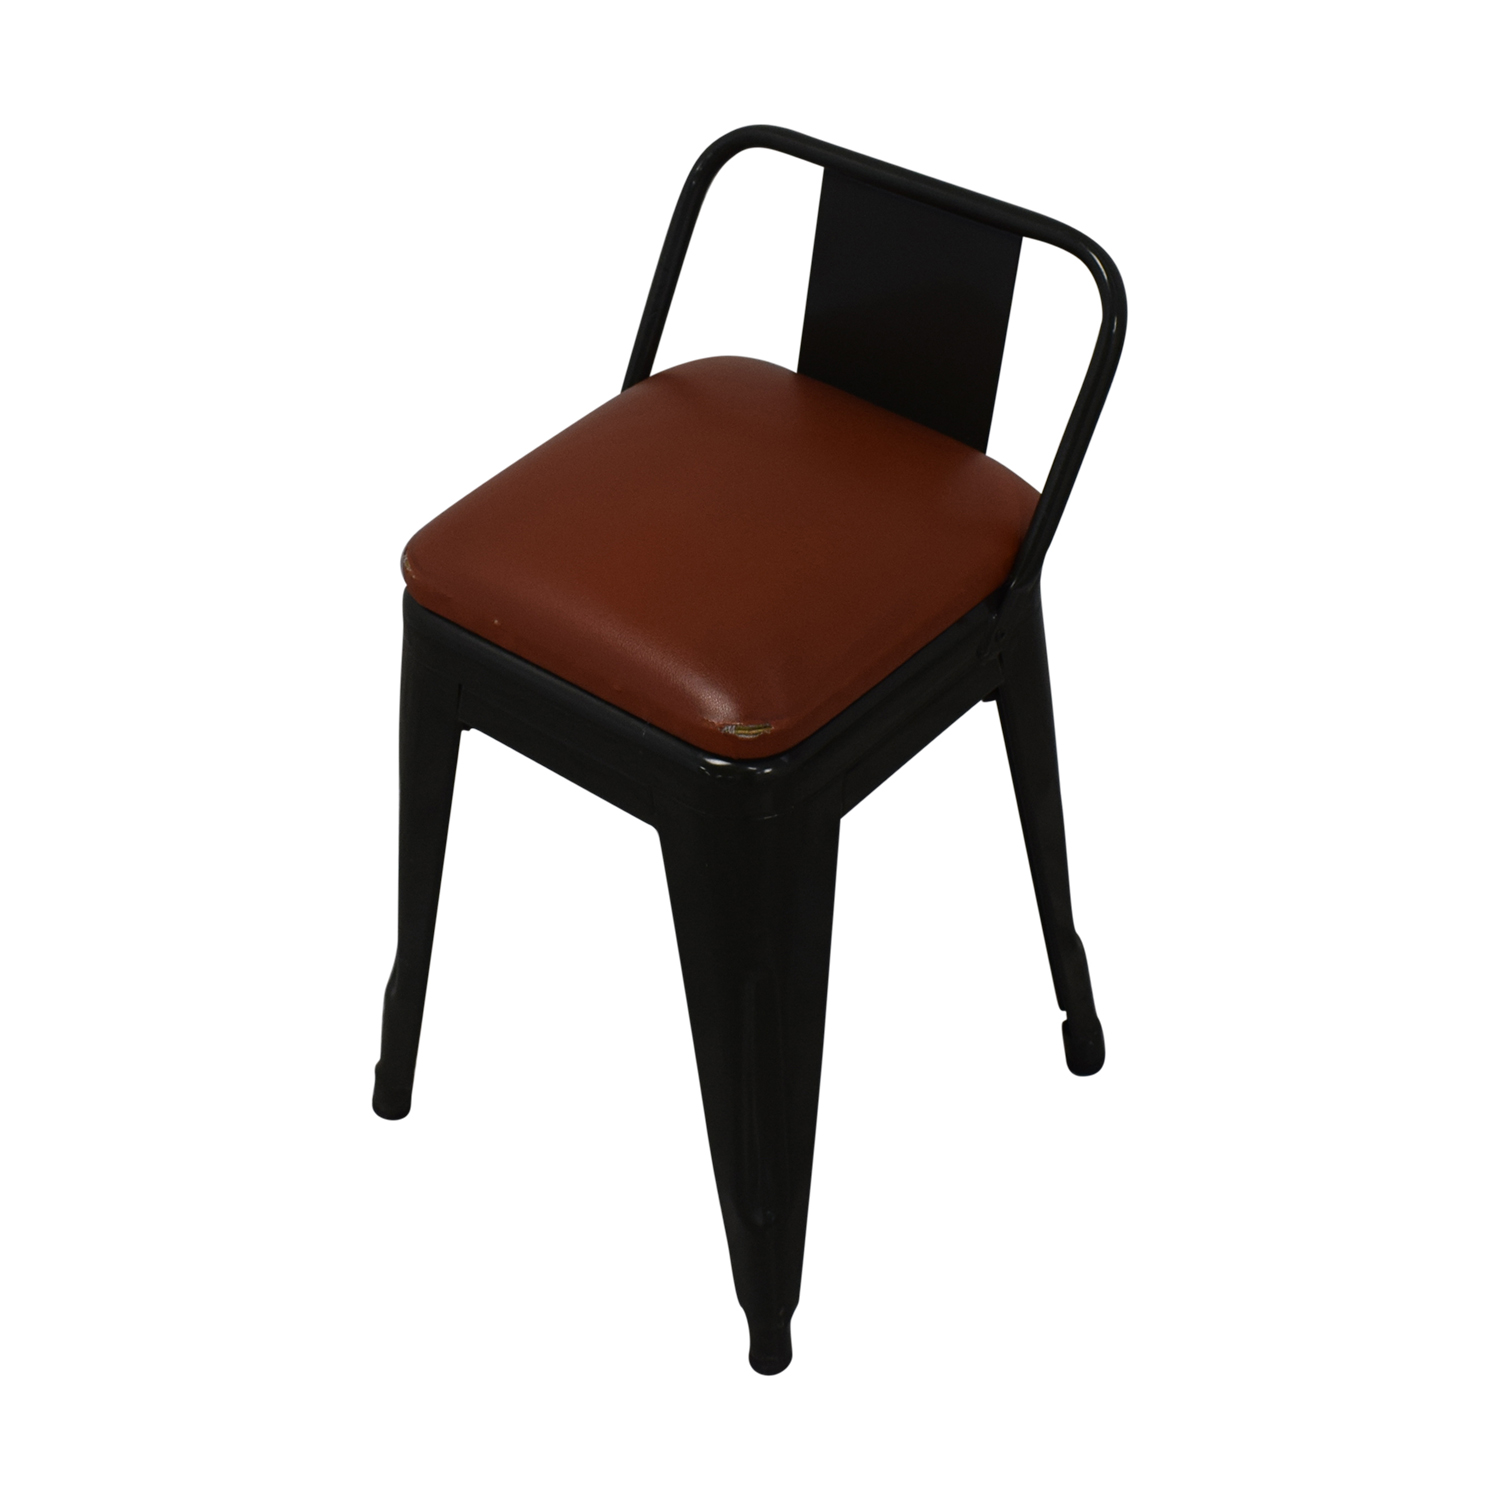 shop Tolix Industrial Stools Tolix Chairs